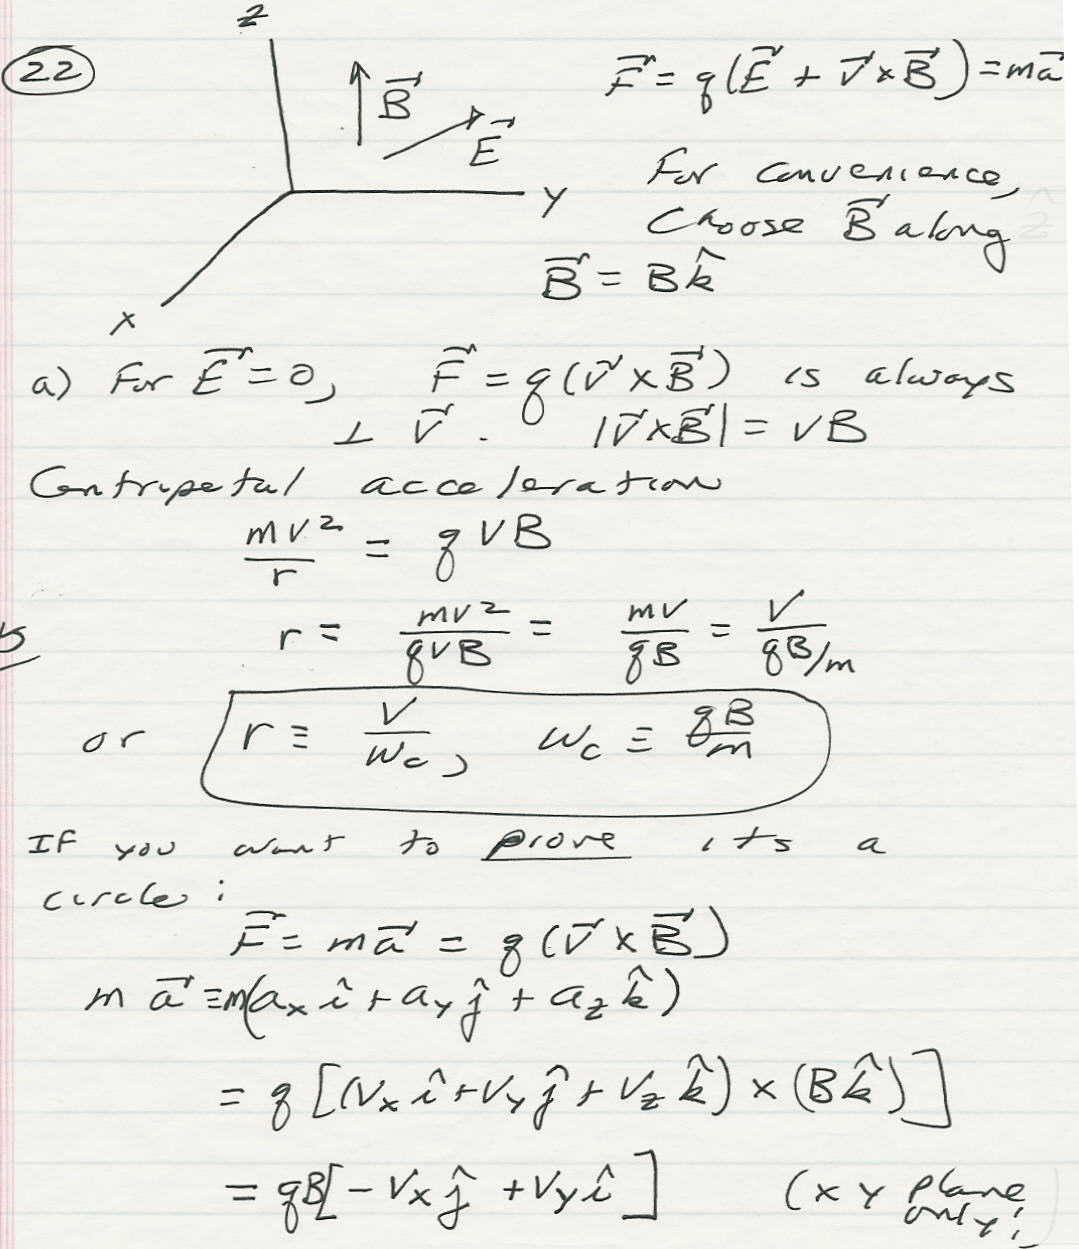 physics 4304 homework Equivalent Fractions to 3 4 solution pages 1 2 3 4 5 6